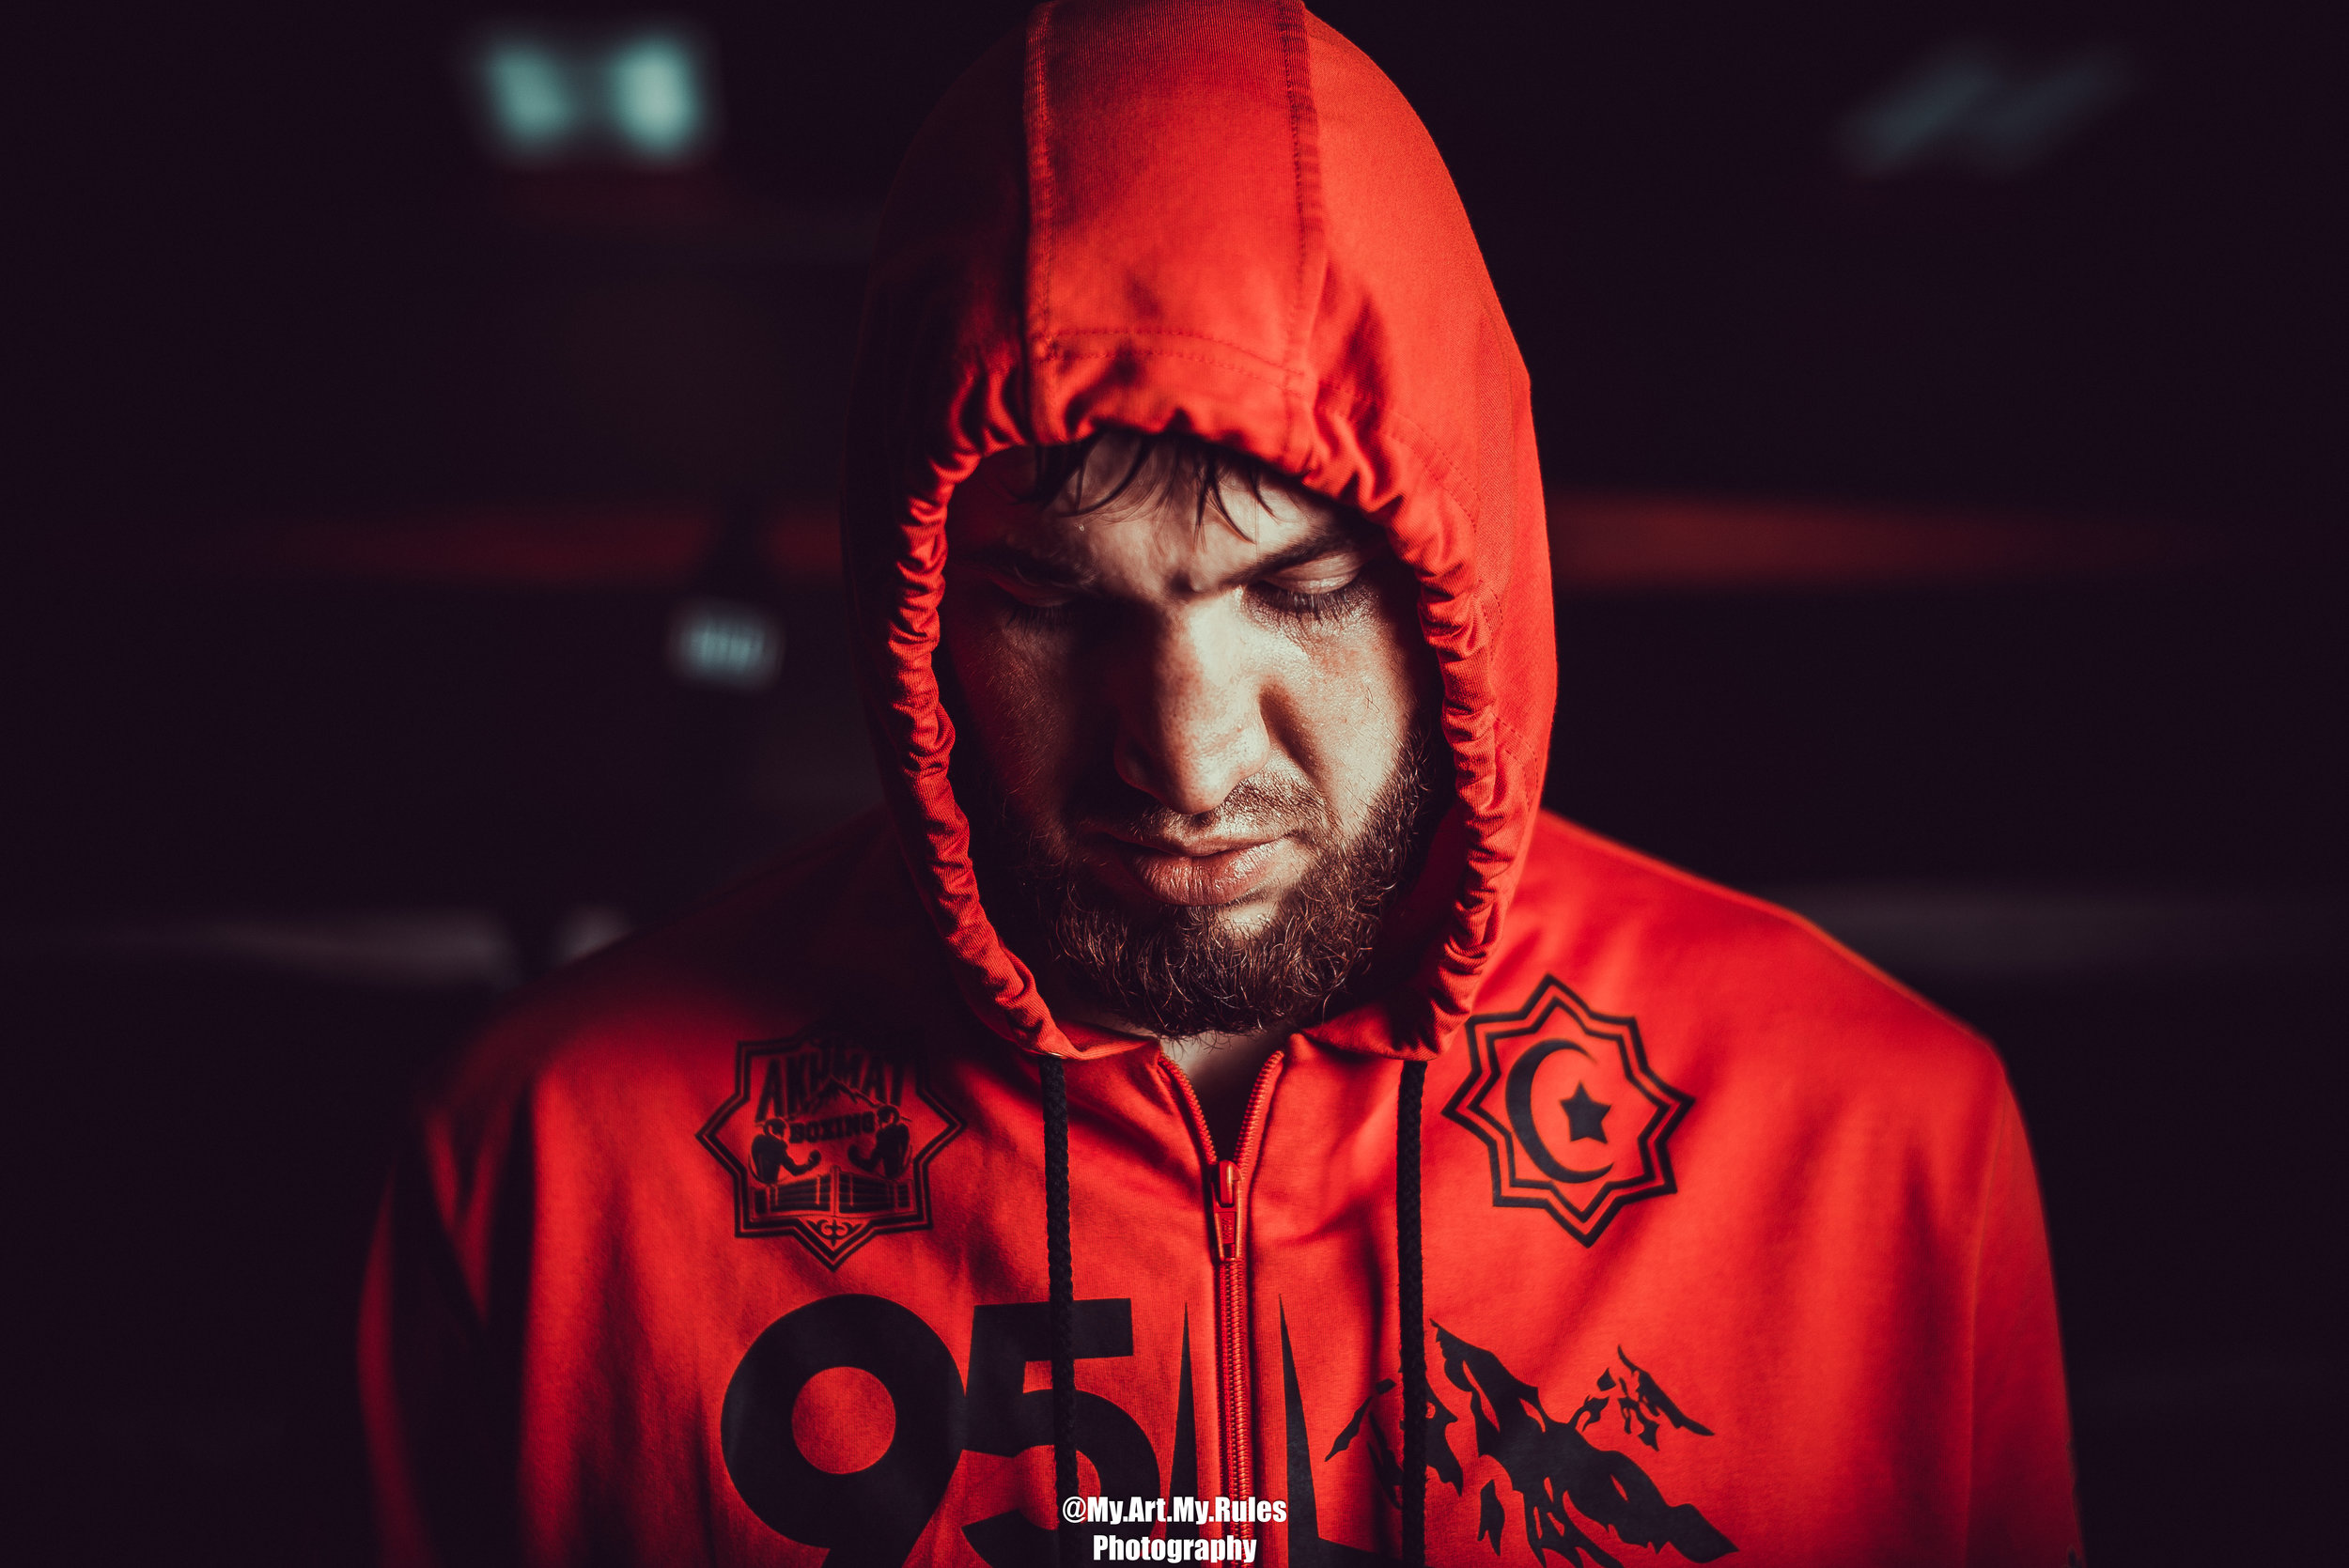 Undefeated Apti Davtaev, a Diamond in the Rough Takes On the Heavyweight Division